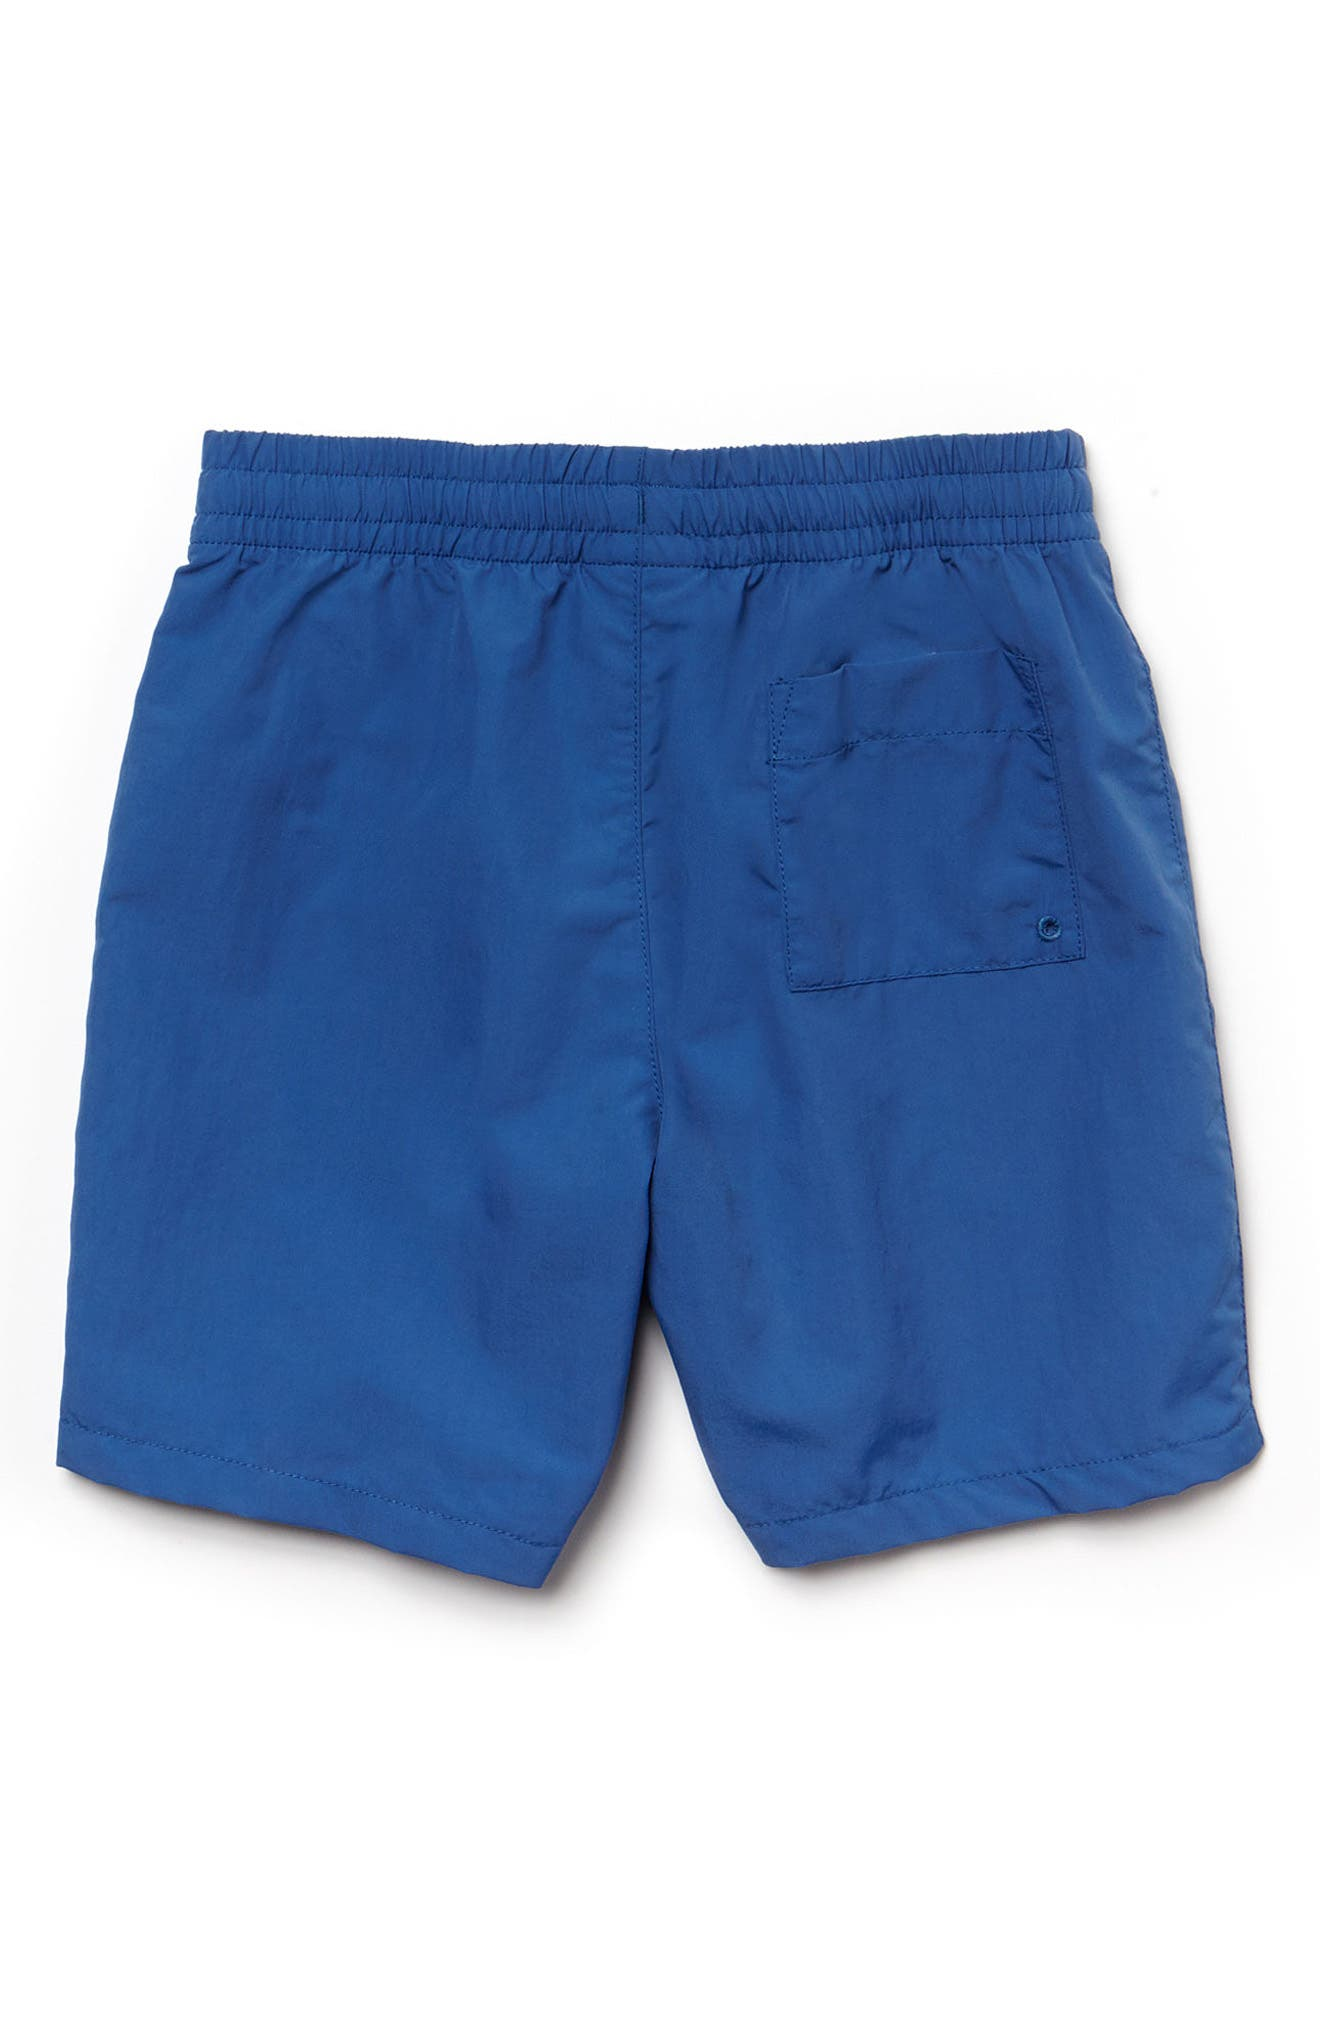 Classic Solid Swim Trunks,                             Alternate thumbnail 2, color,                             Elysee Blue/ Undergrowth Green